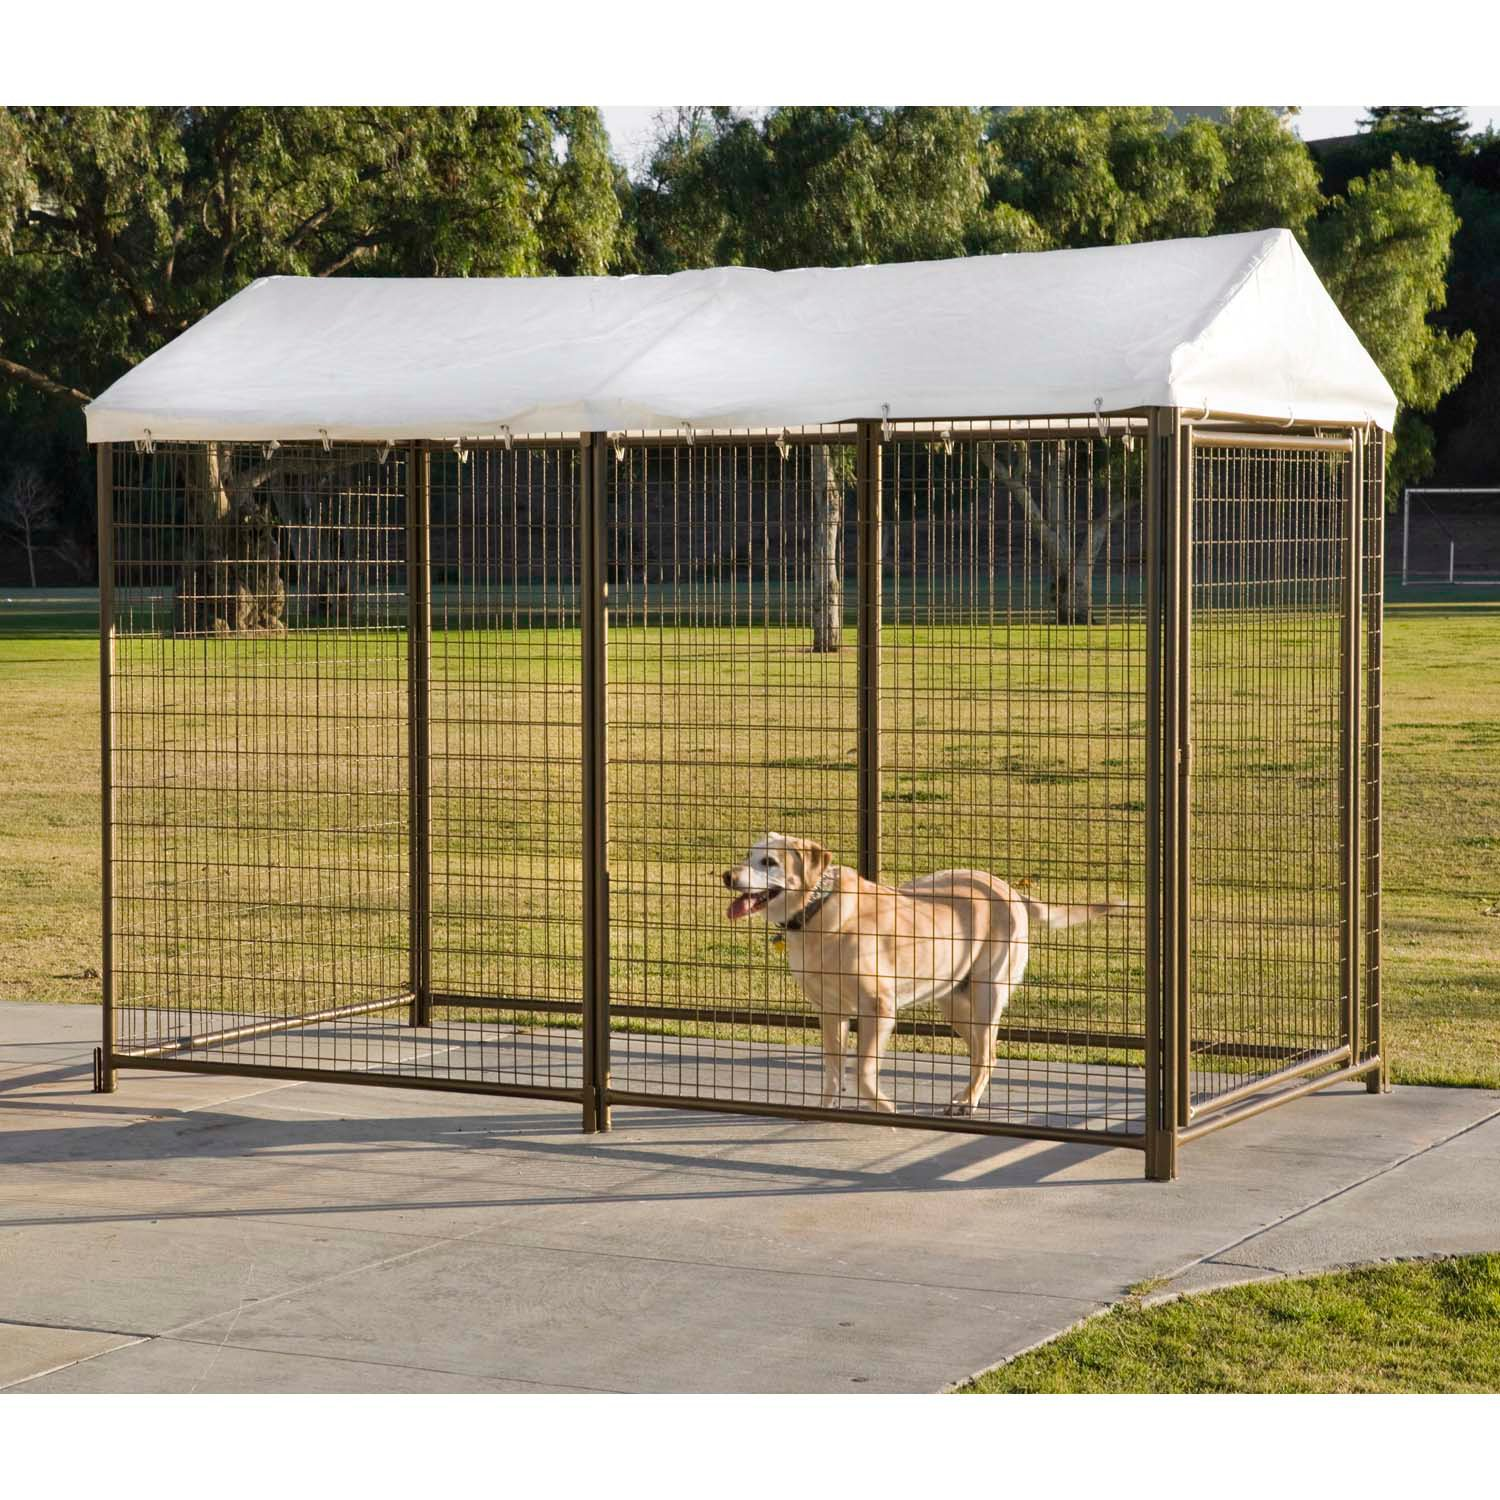 Image gallery outdoor kennel for Dog run outdoor kennel house